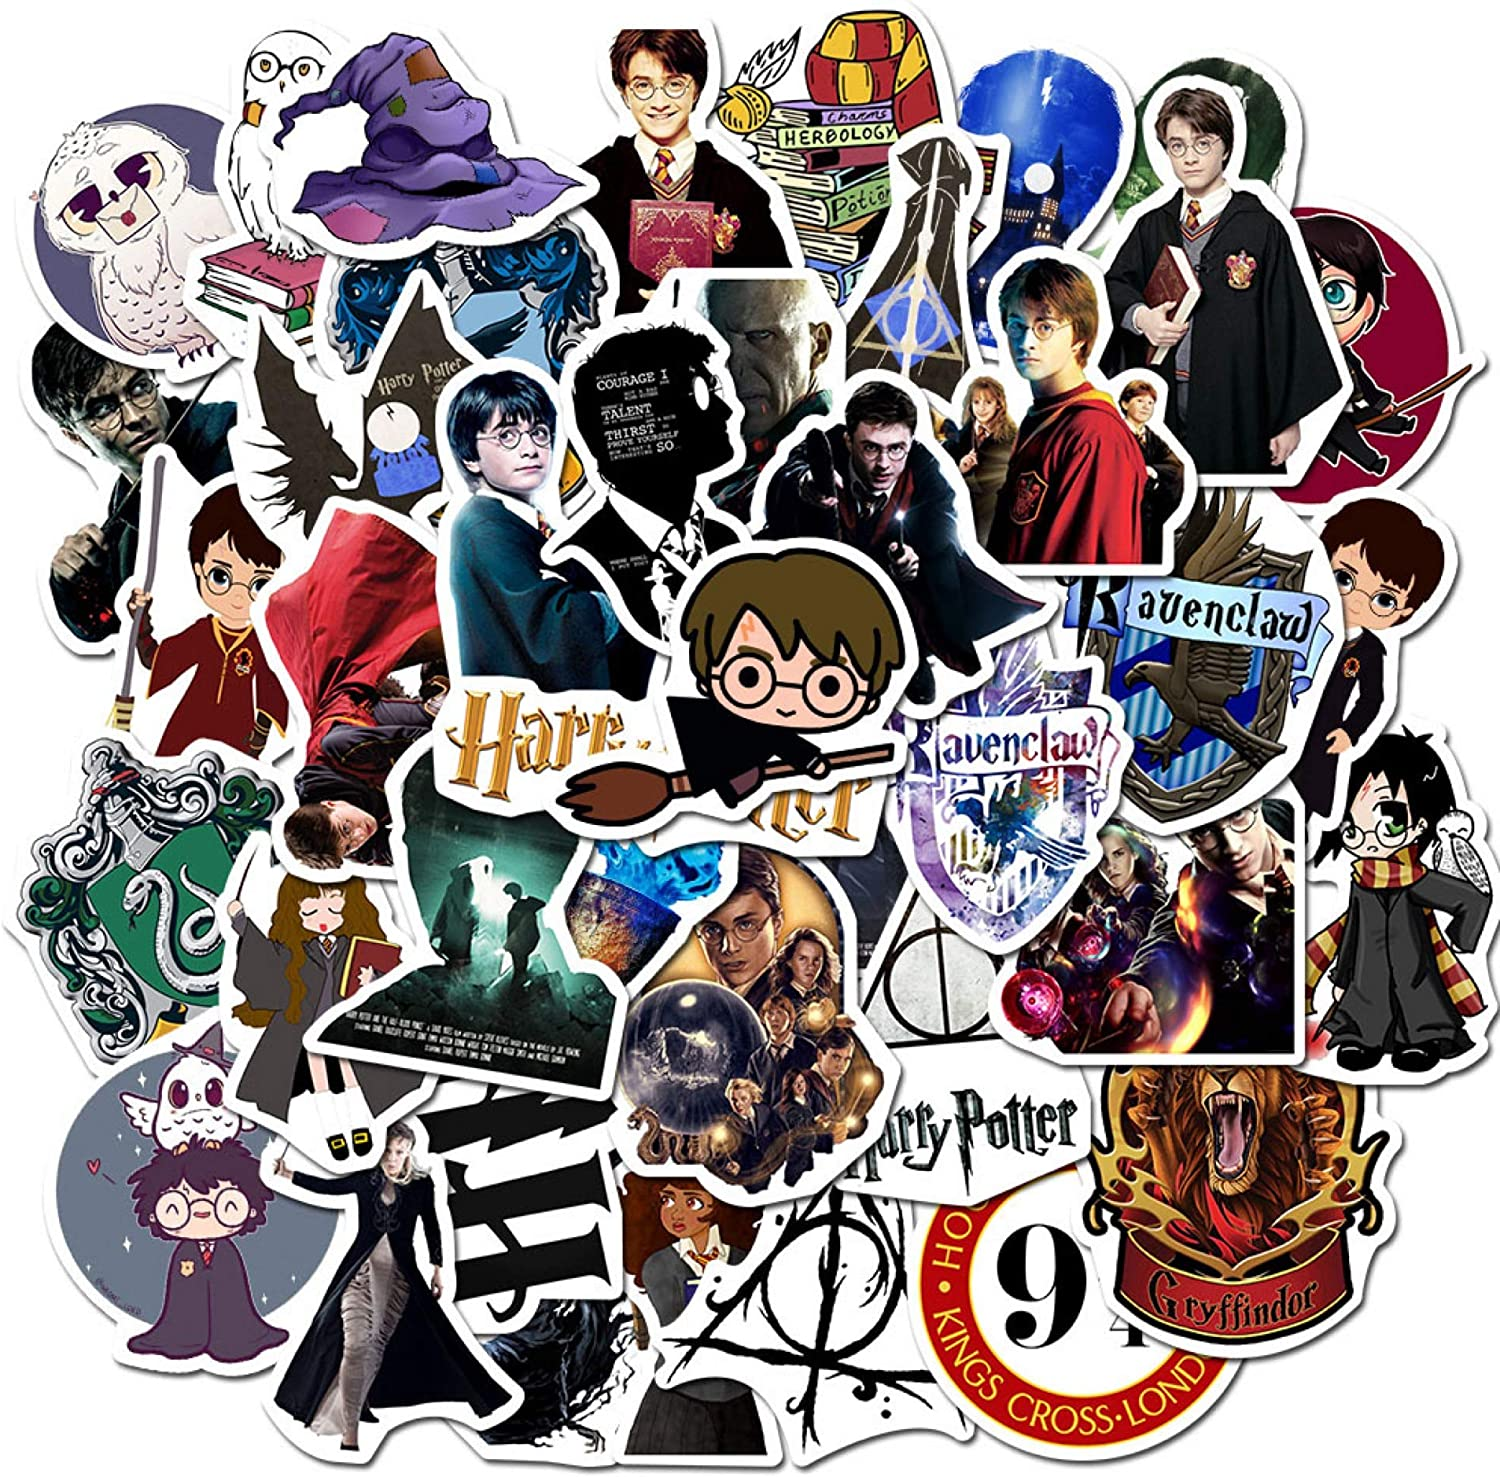 Magical Potter Waterproof Stickers of 50 Vinyl Decal Merchandise Laptop Stickers for Laptops, Computers, Hydro Flasks, Skateboard and Travel Case